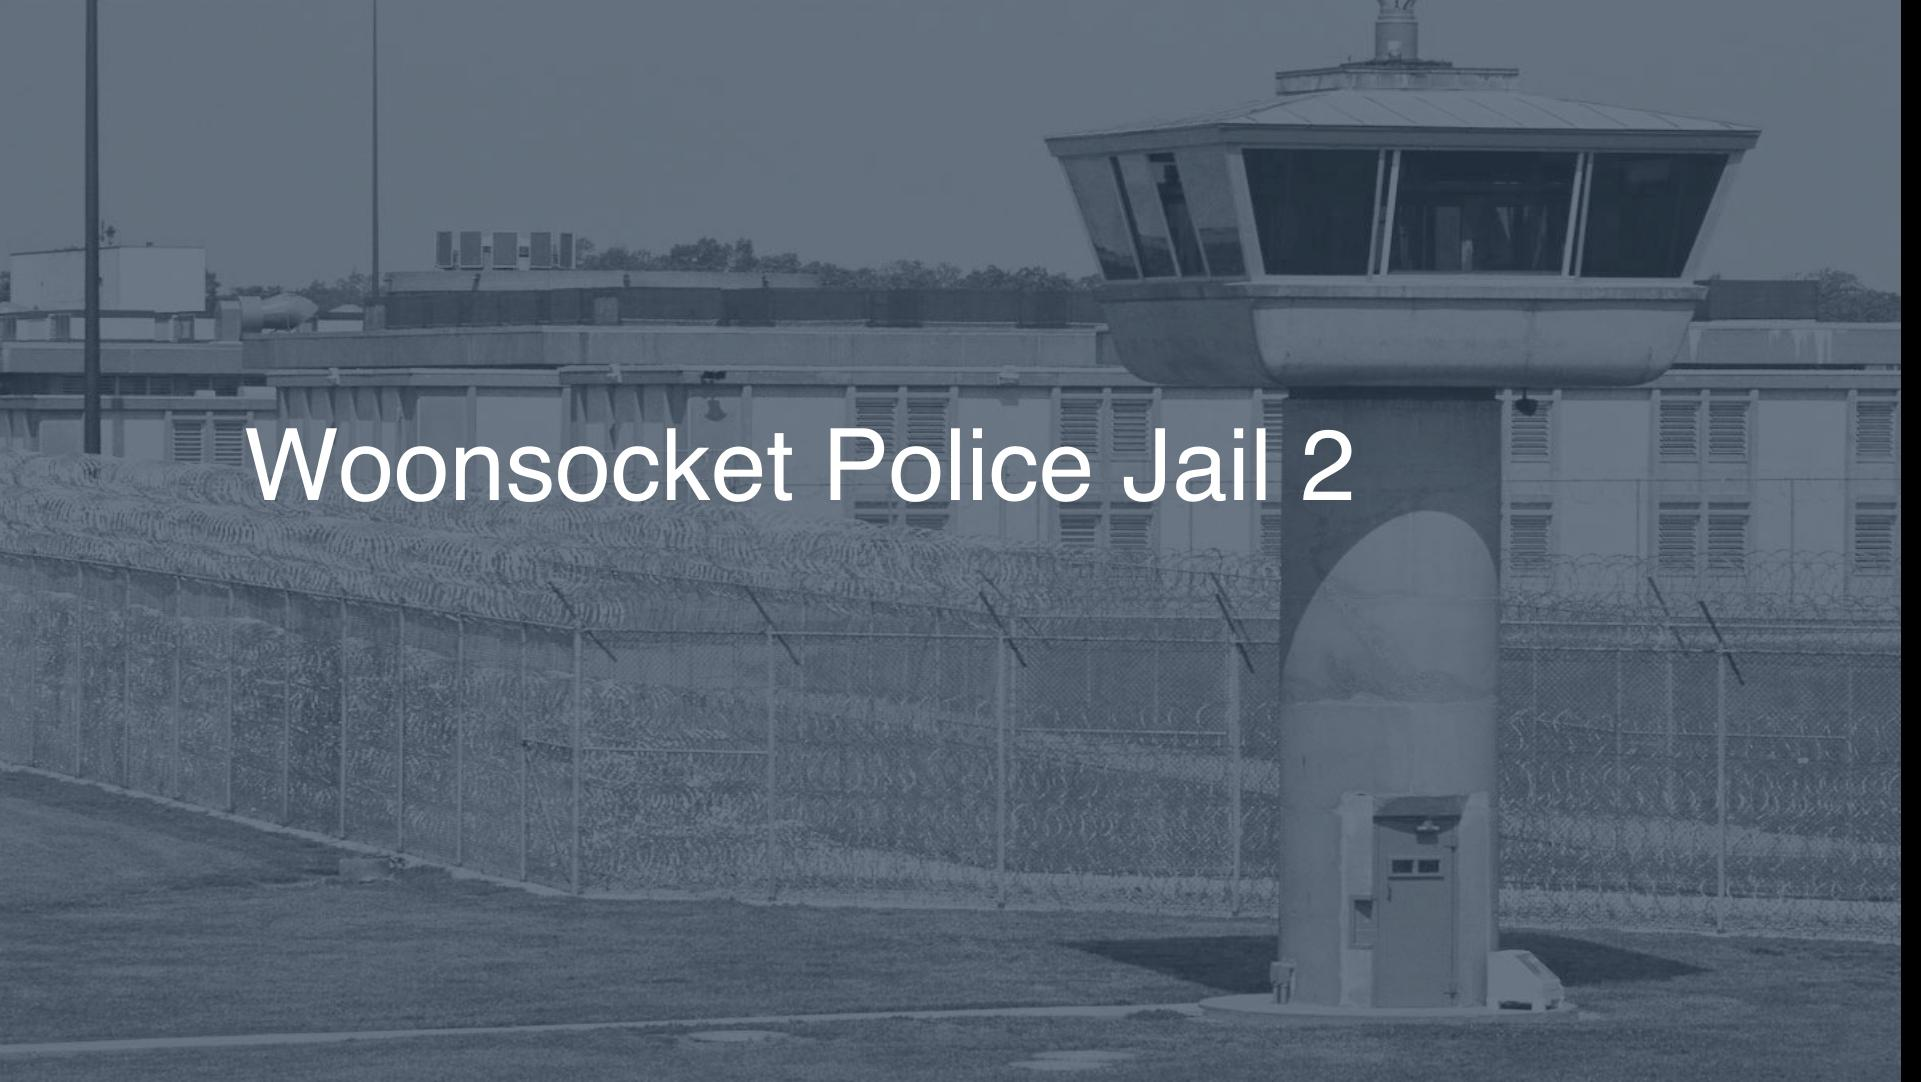 Woonsocket Police Jail correctional facility picture